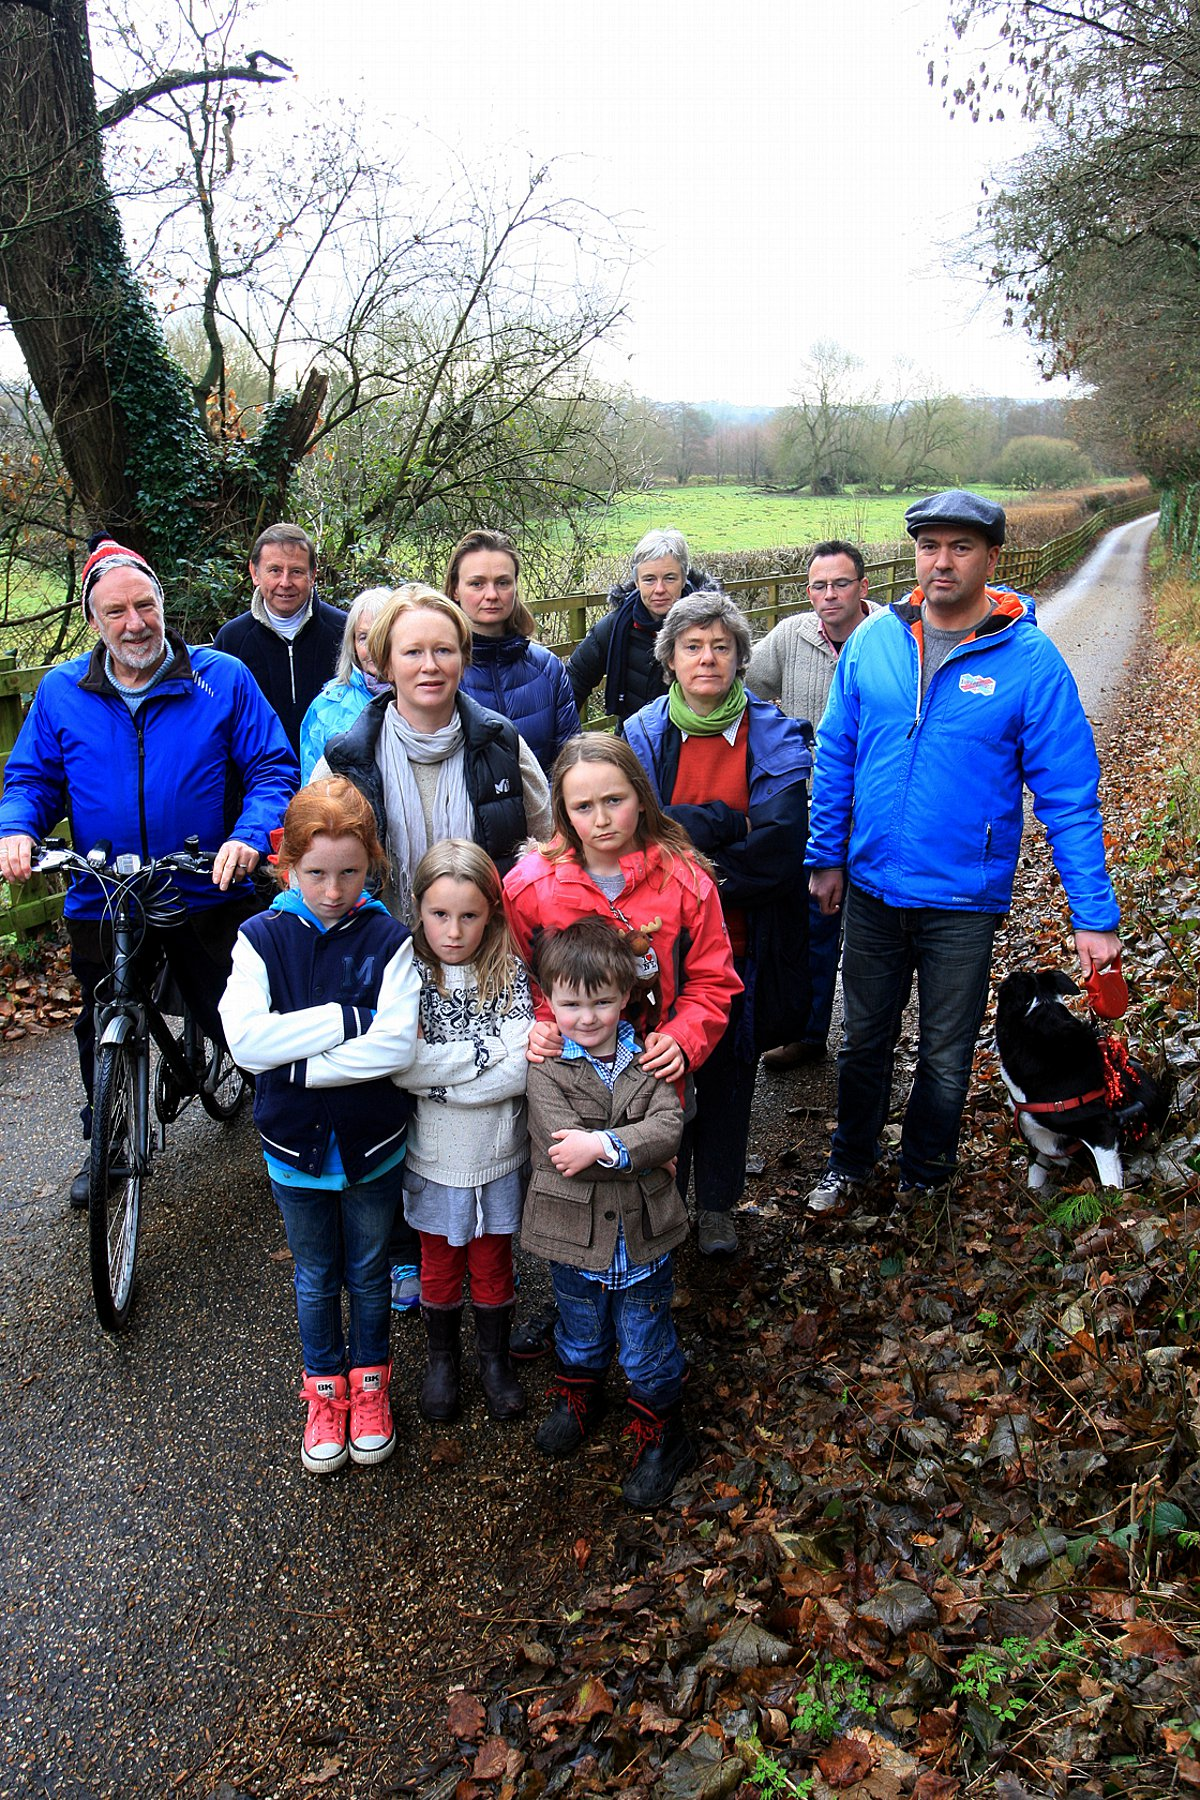 Residents and lane users have campaigned against the plans since they emerged in 2011